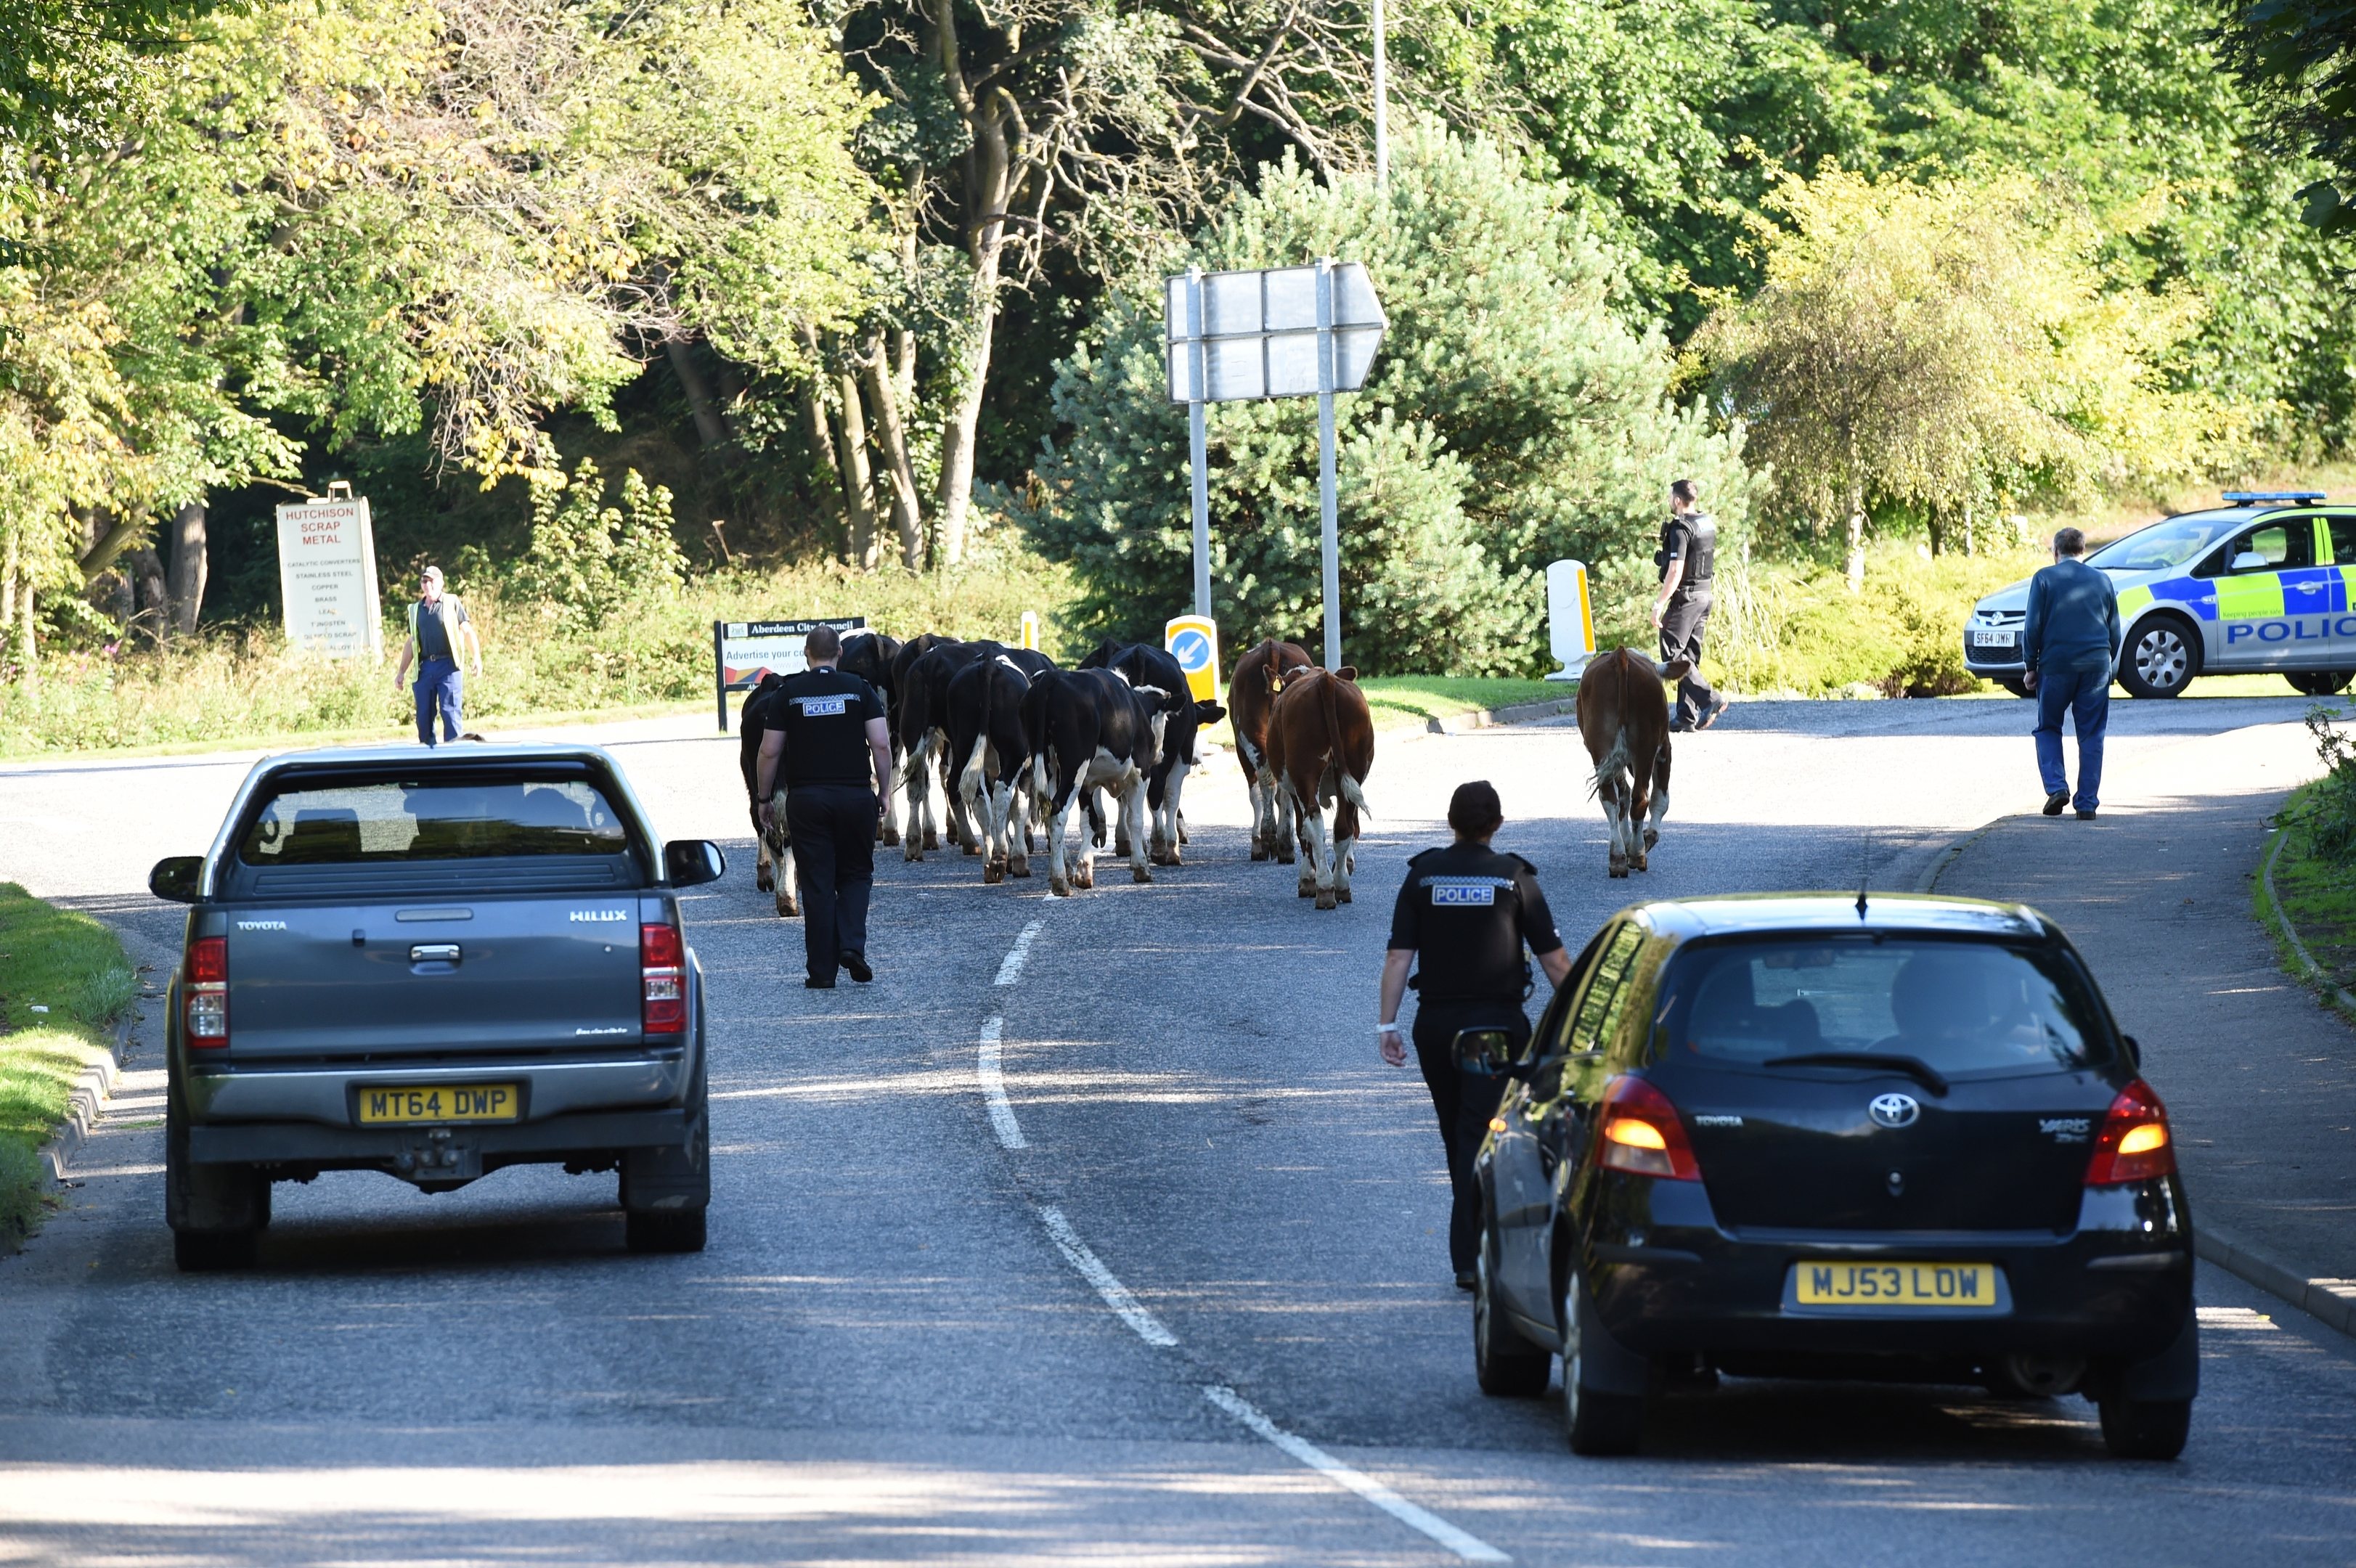 Officers escorted the cows home